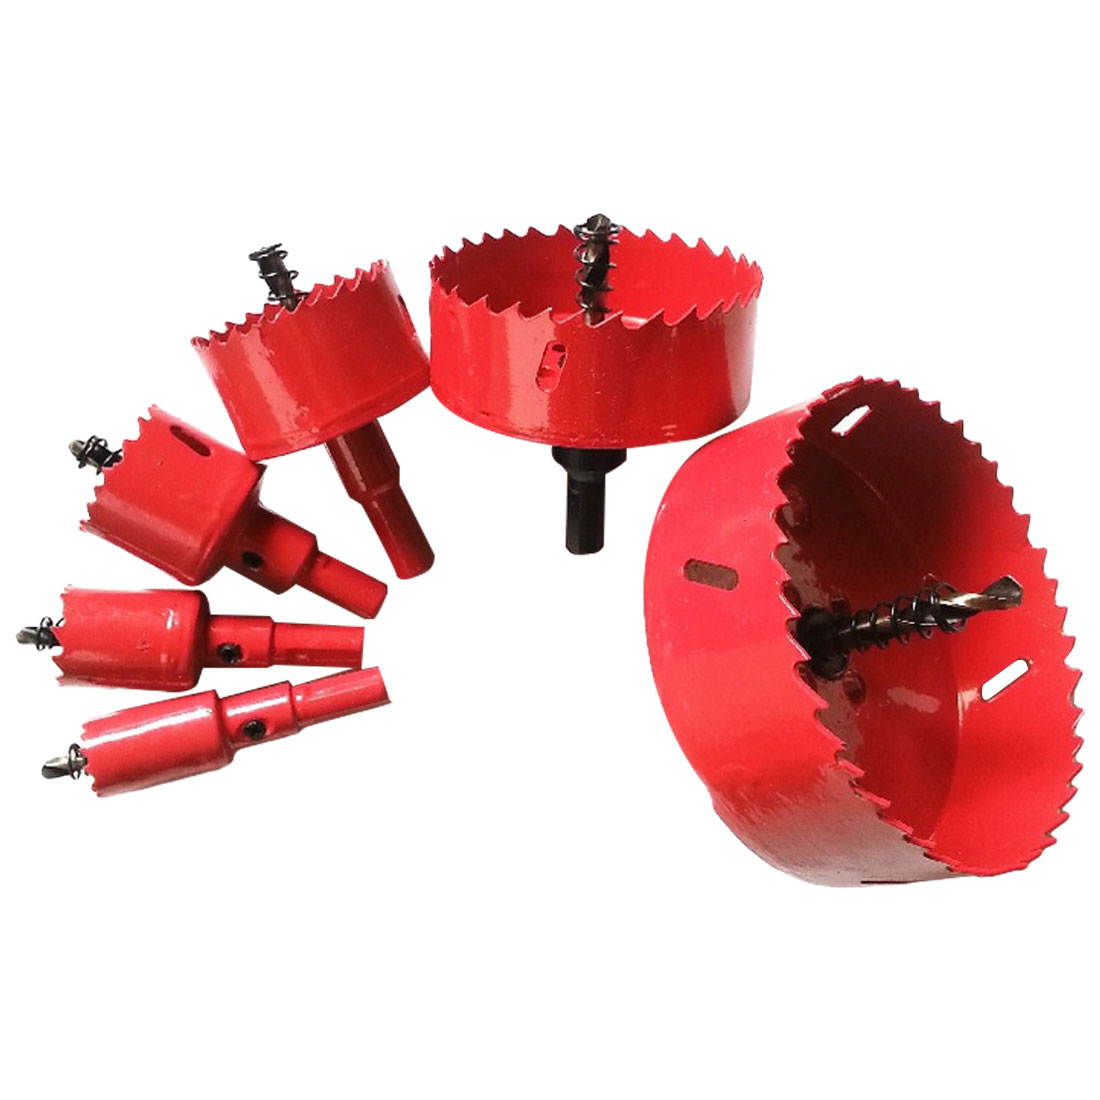 Woodworking Hole Opener Drill Bit 16mm-50mm Hole Saw Twist Drill Bits Cutter Power Tool Metal Holes Drilling Kit Carpentry Tools